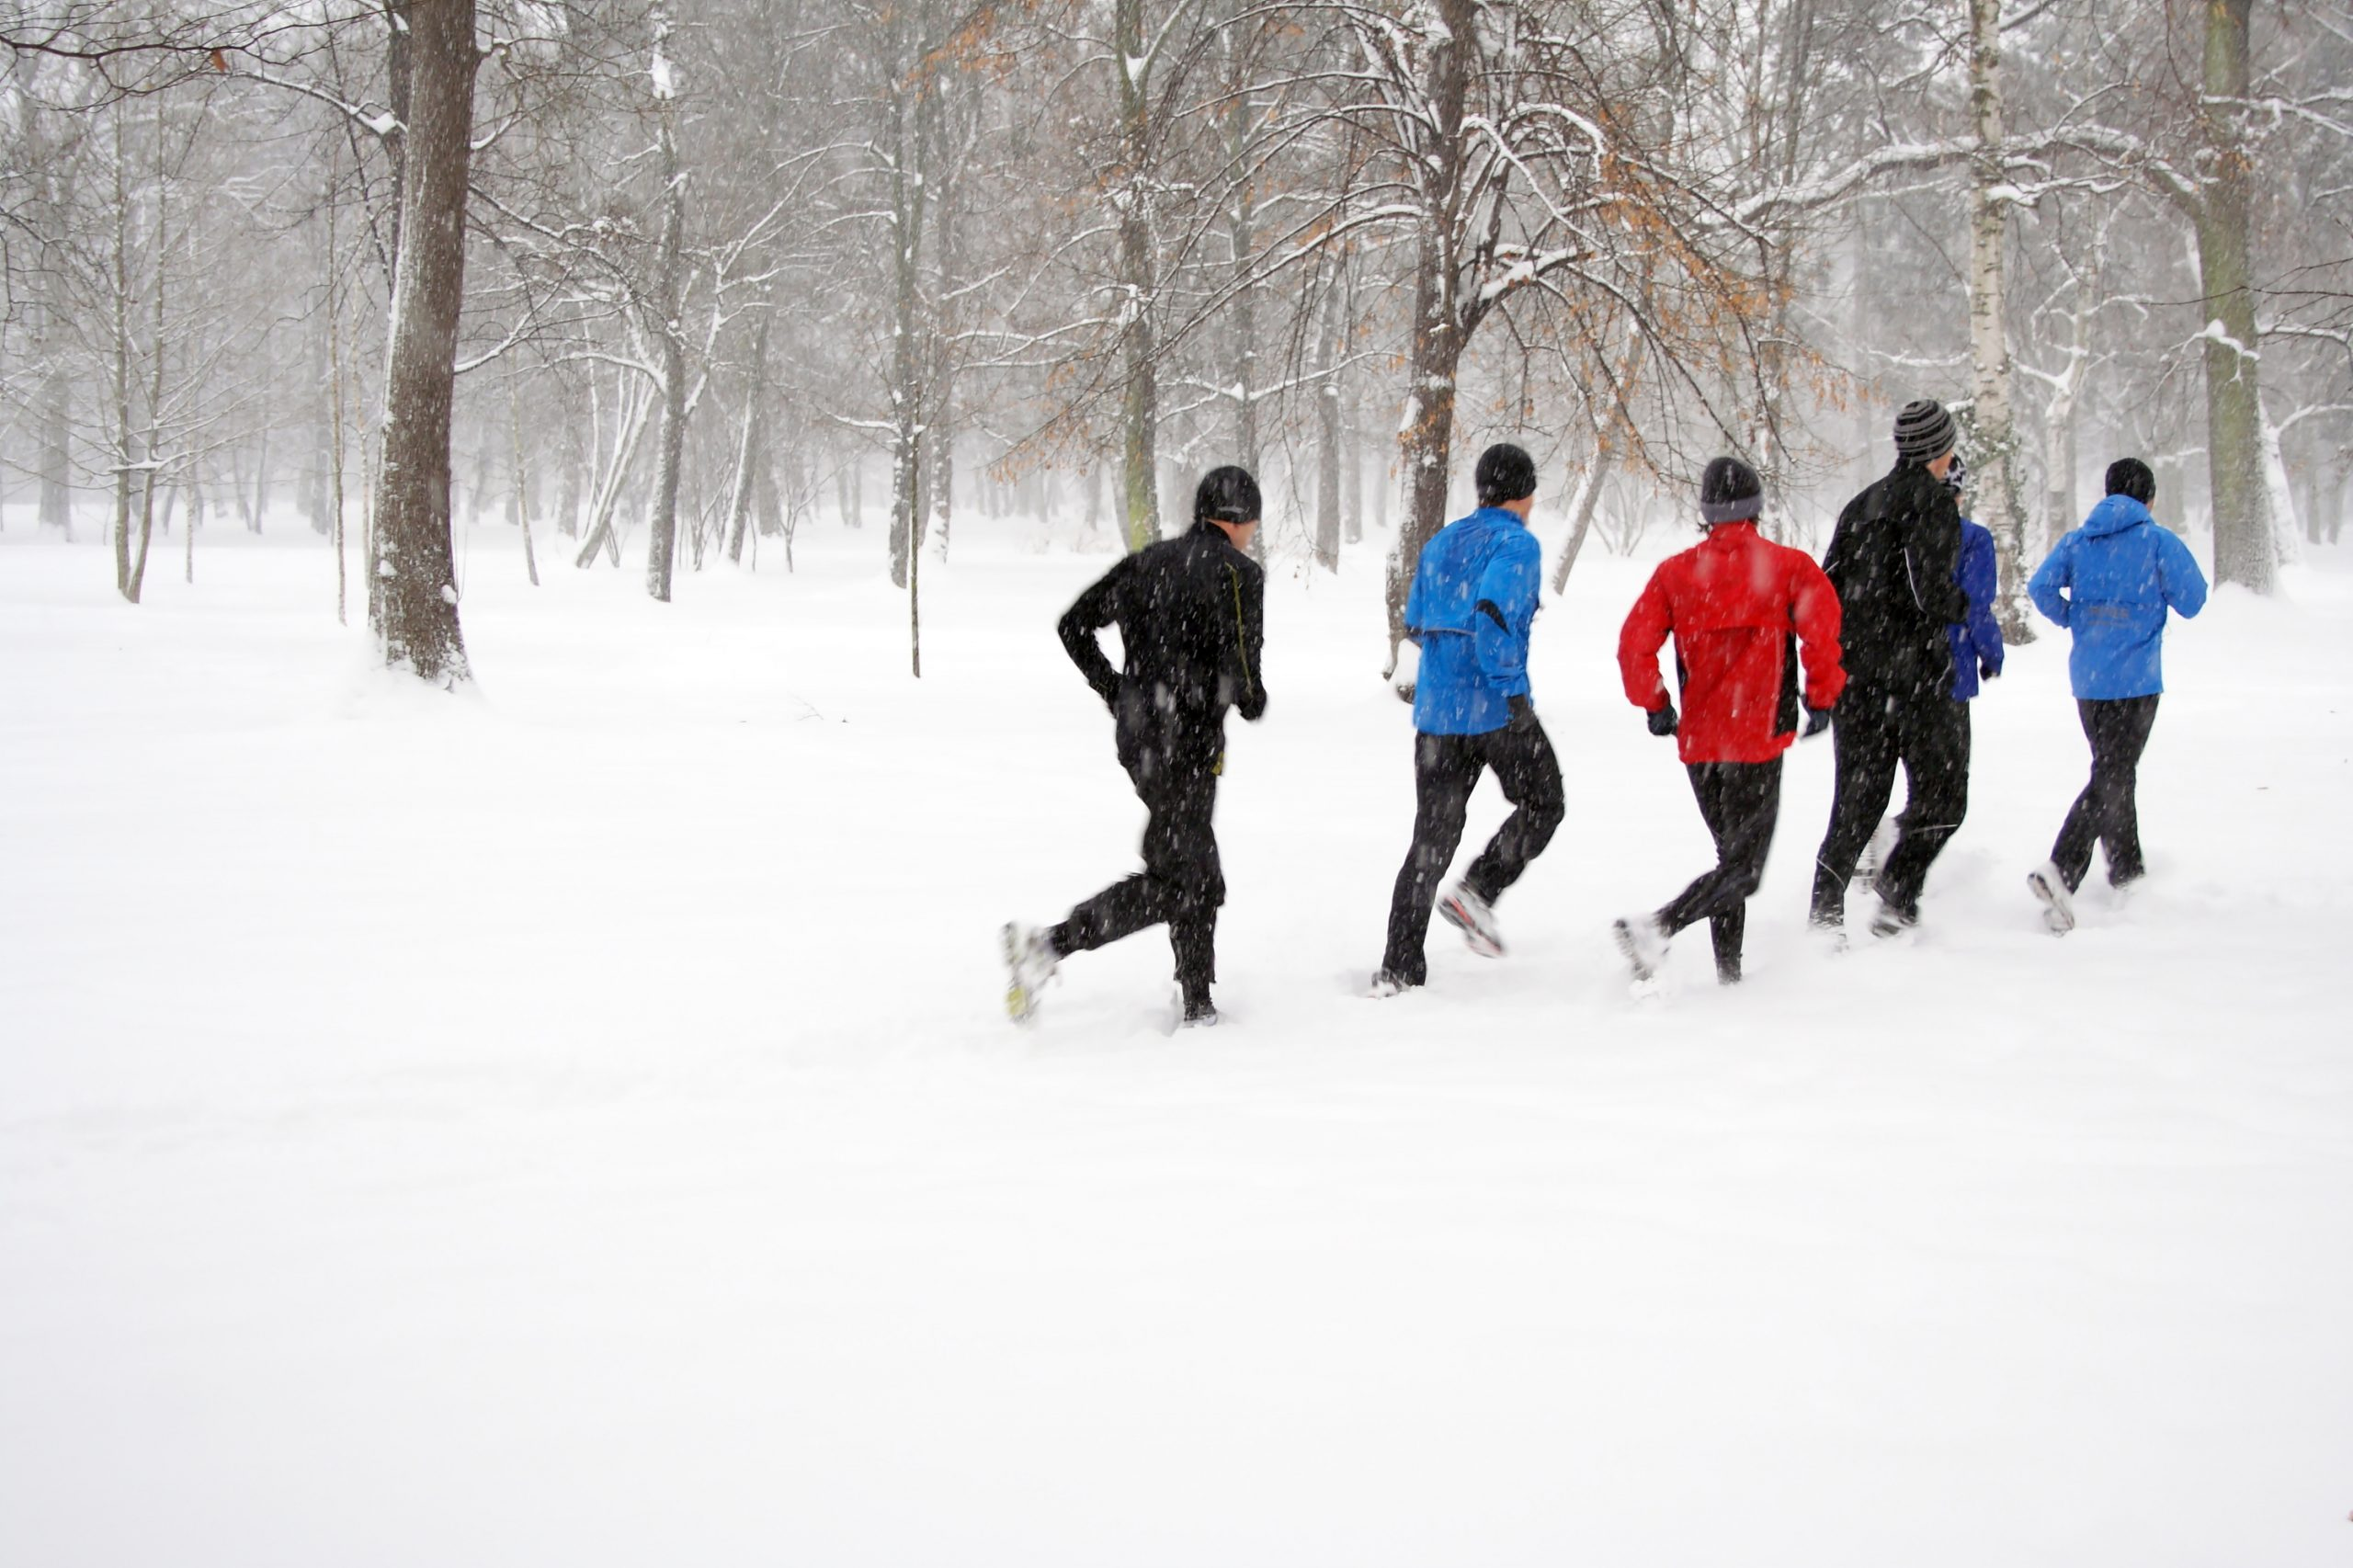 The Runner's Winter Dilemma: Train Indoors or Outdoors